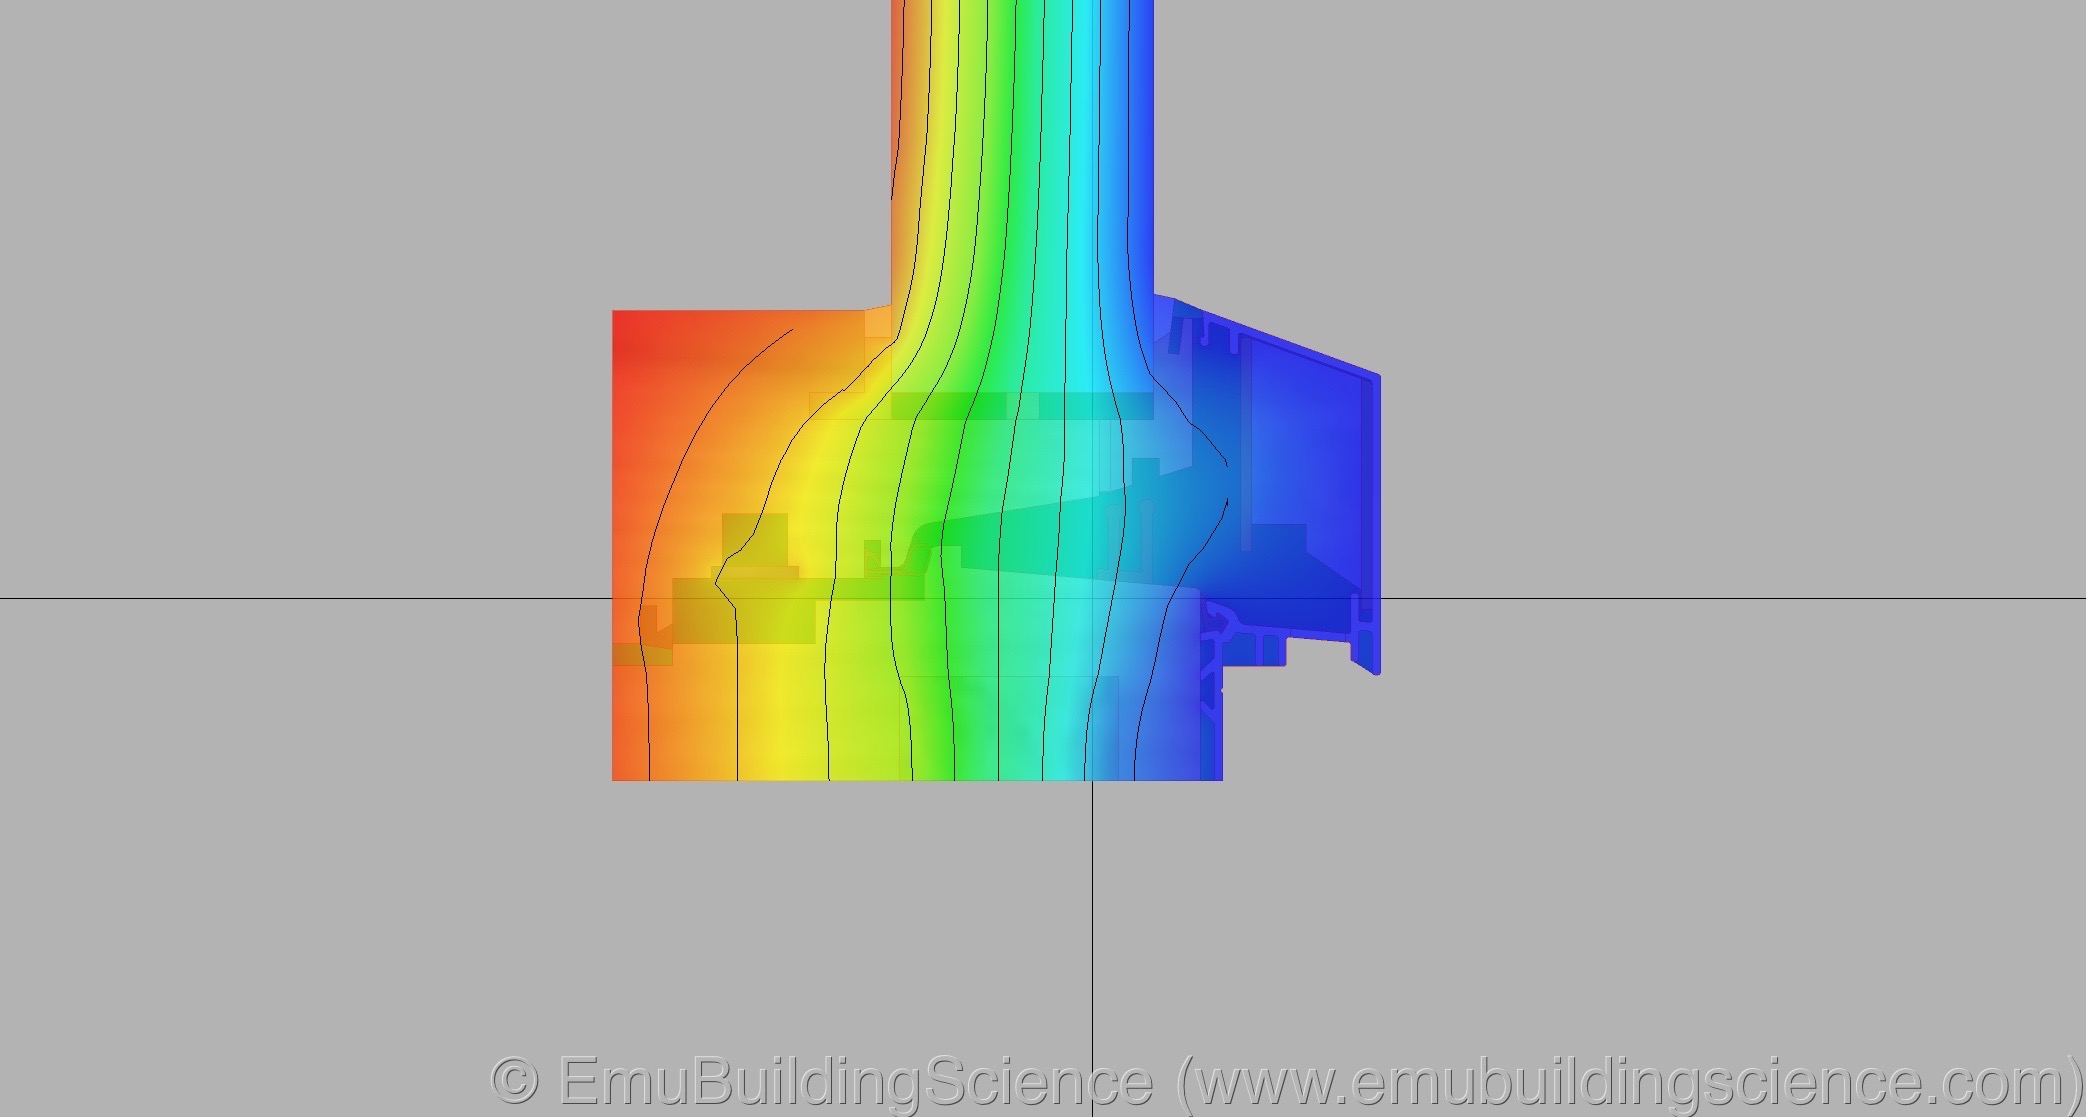 Emu - window sill isotherms